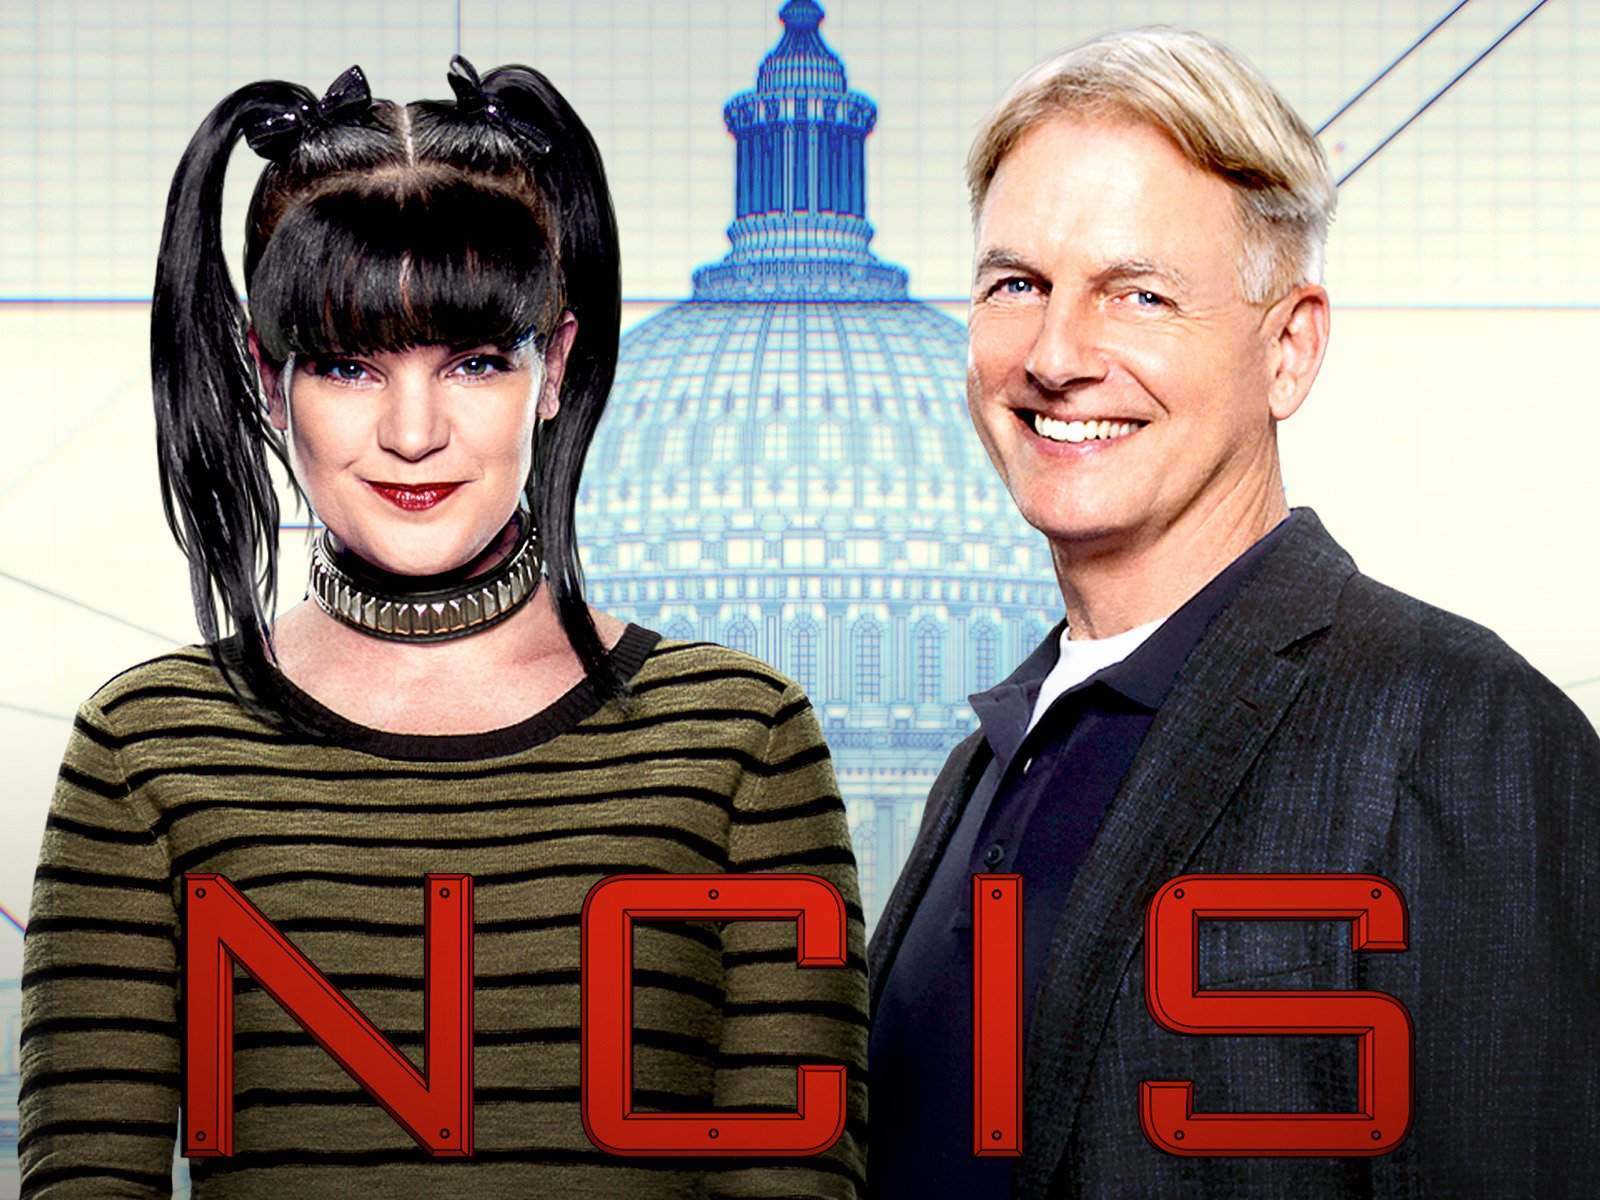 ncis tony dating doctor speed dating in malta